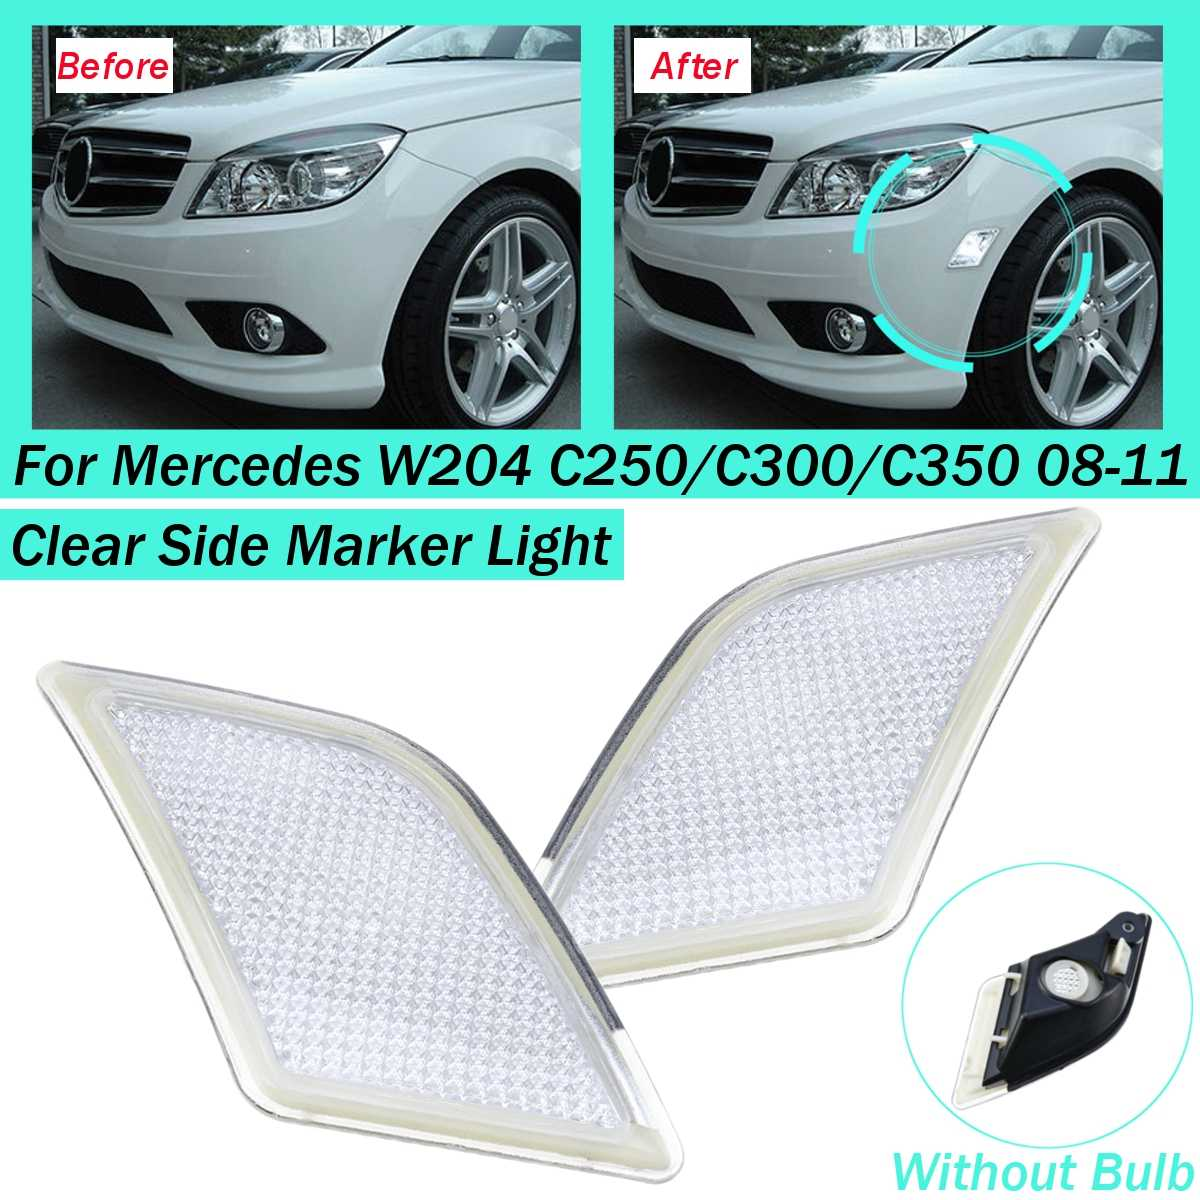 #2048200221 Left Right Pair Front Side Marker Light Lamp For <font><b>Mercedes</b></font> W204 C250/<font><b>C300</b></font>/C350 2008 2009 <font><b>2010</b></font> 2011 without bulb image